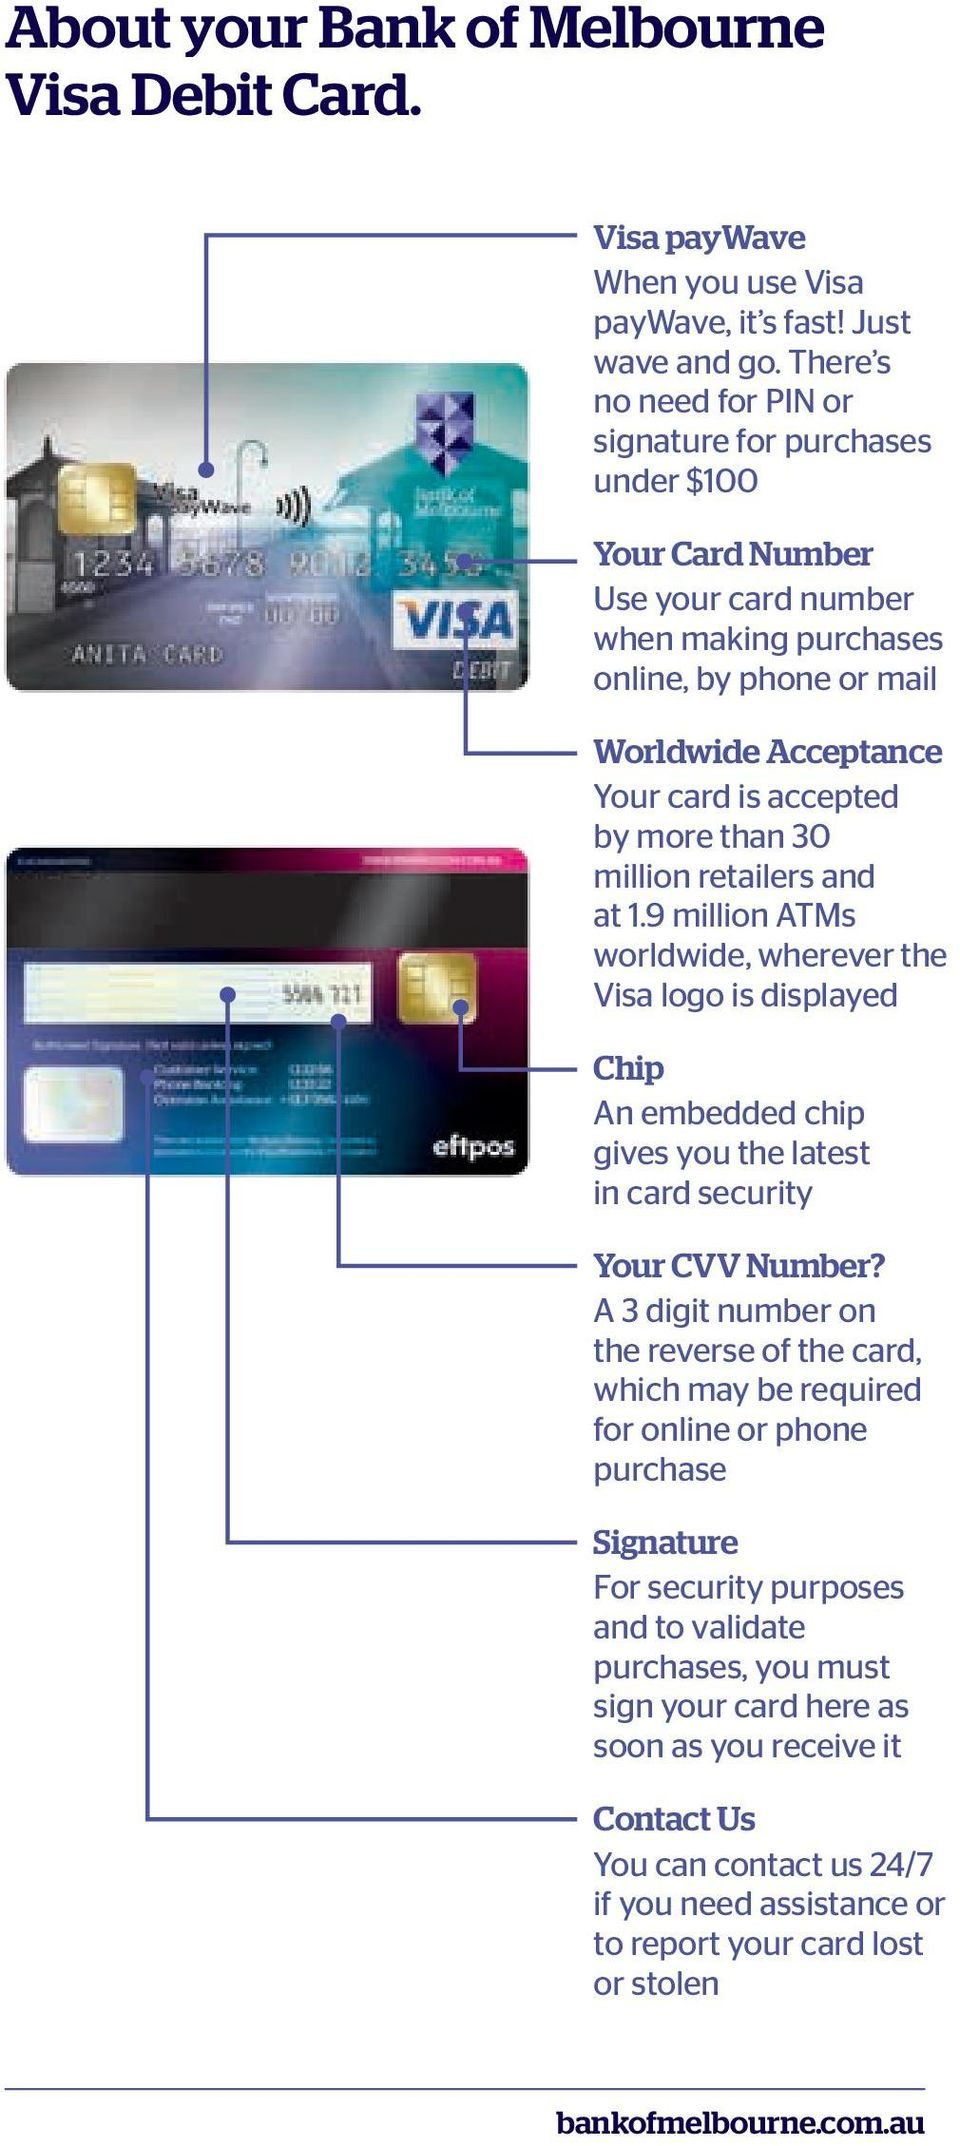 than 30 million retailers and at 1.9 million ATMs worldwide, wherever the Visa logo is displayed Chip An embedded chip gives you the latest in card security Your CVV Number?